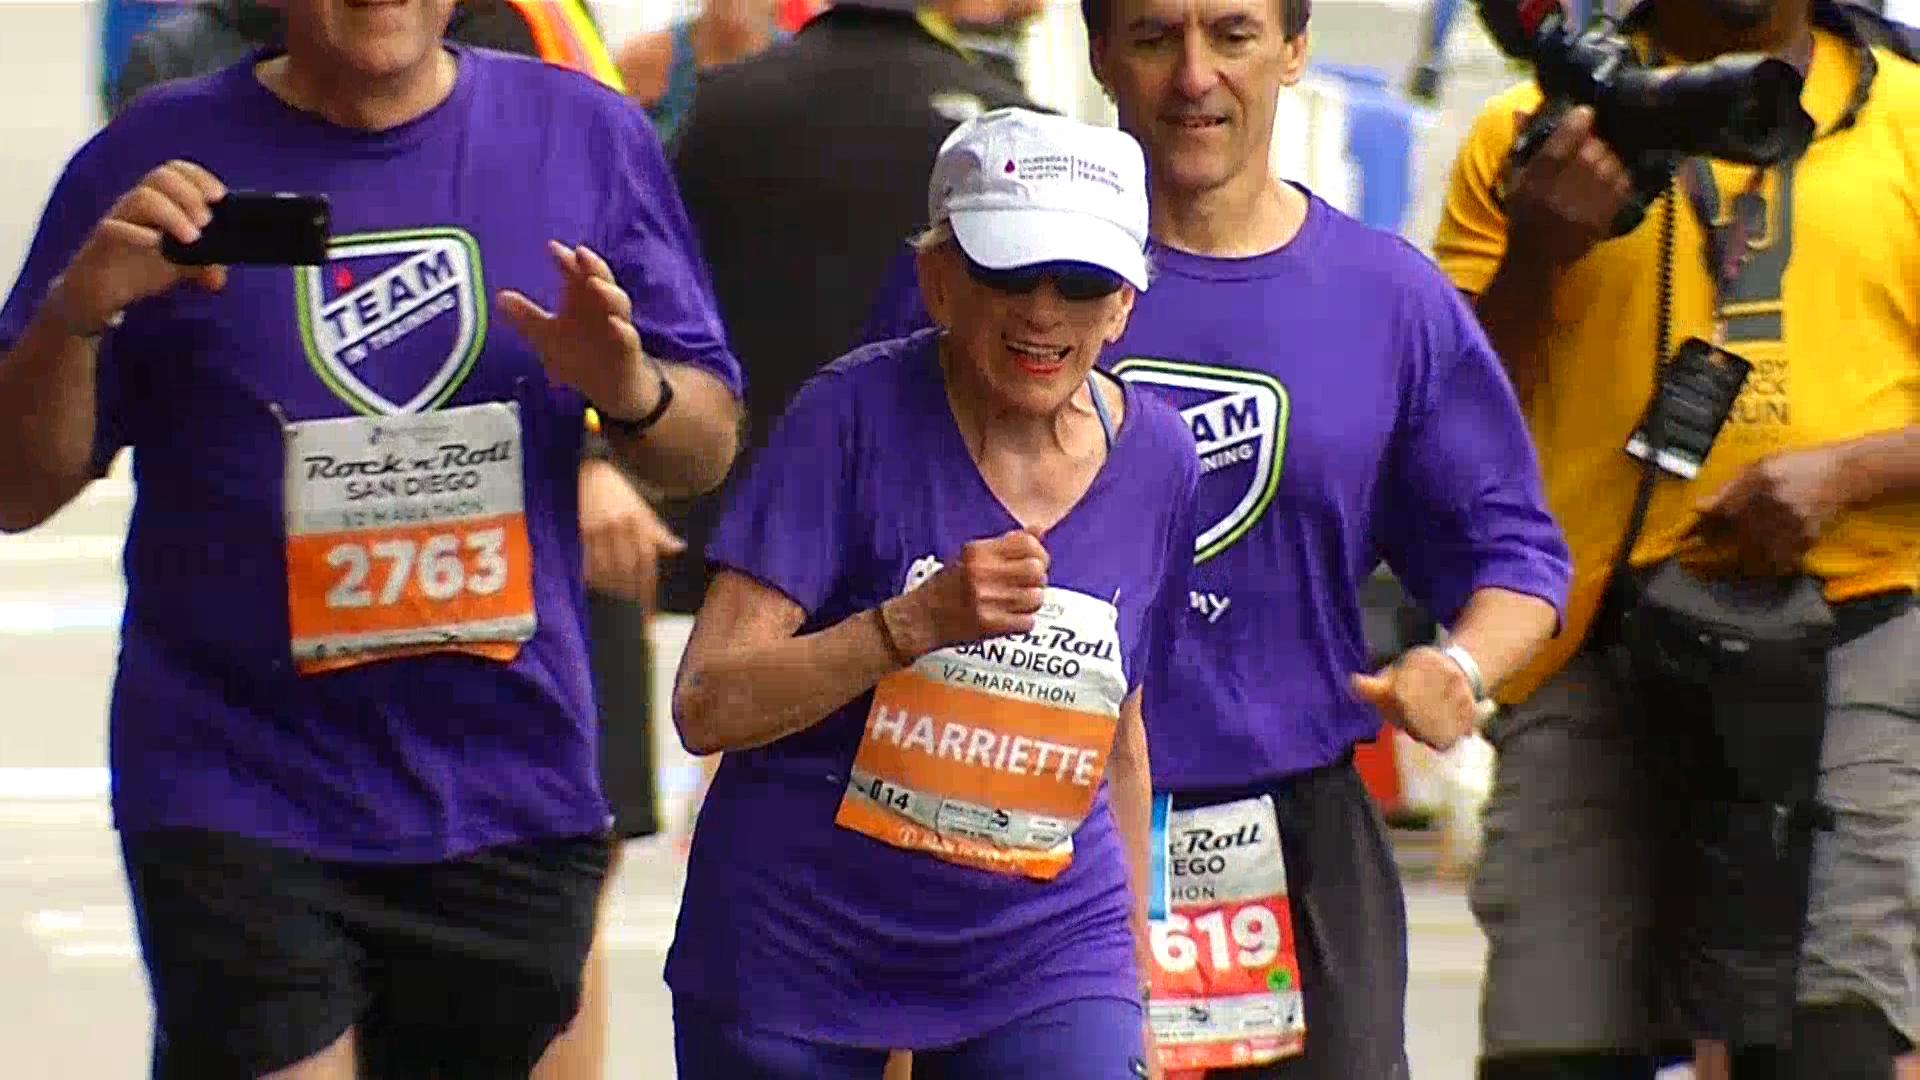 94-year-old Harriette Thompson becomes oldest woman to run half marathon